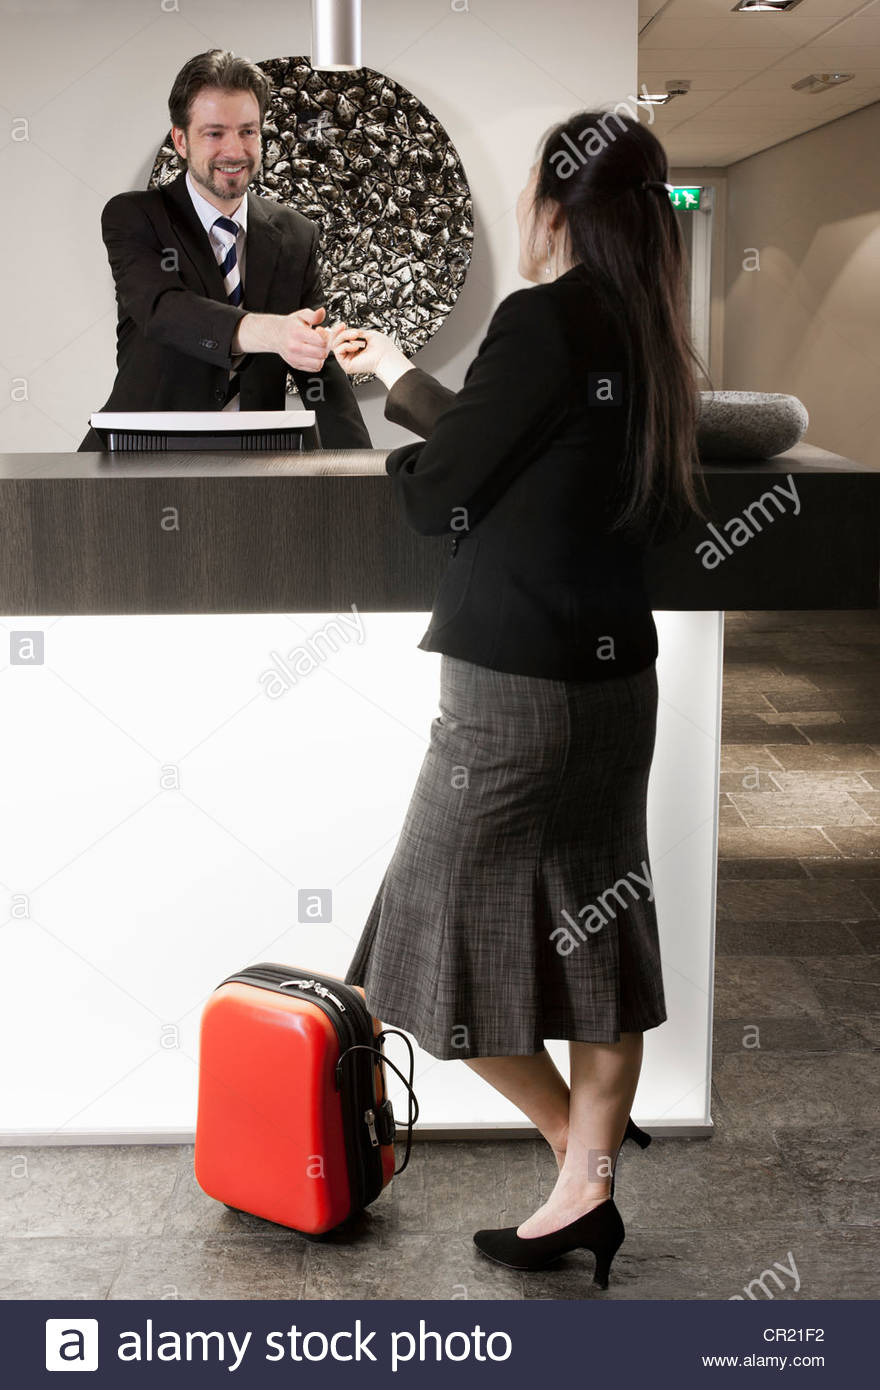 Businesswoman checking in to hotel - Stock Image